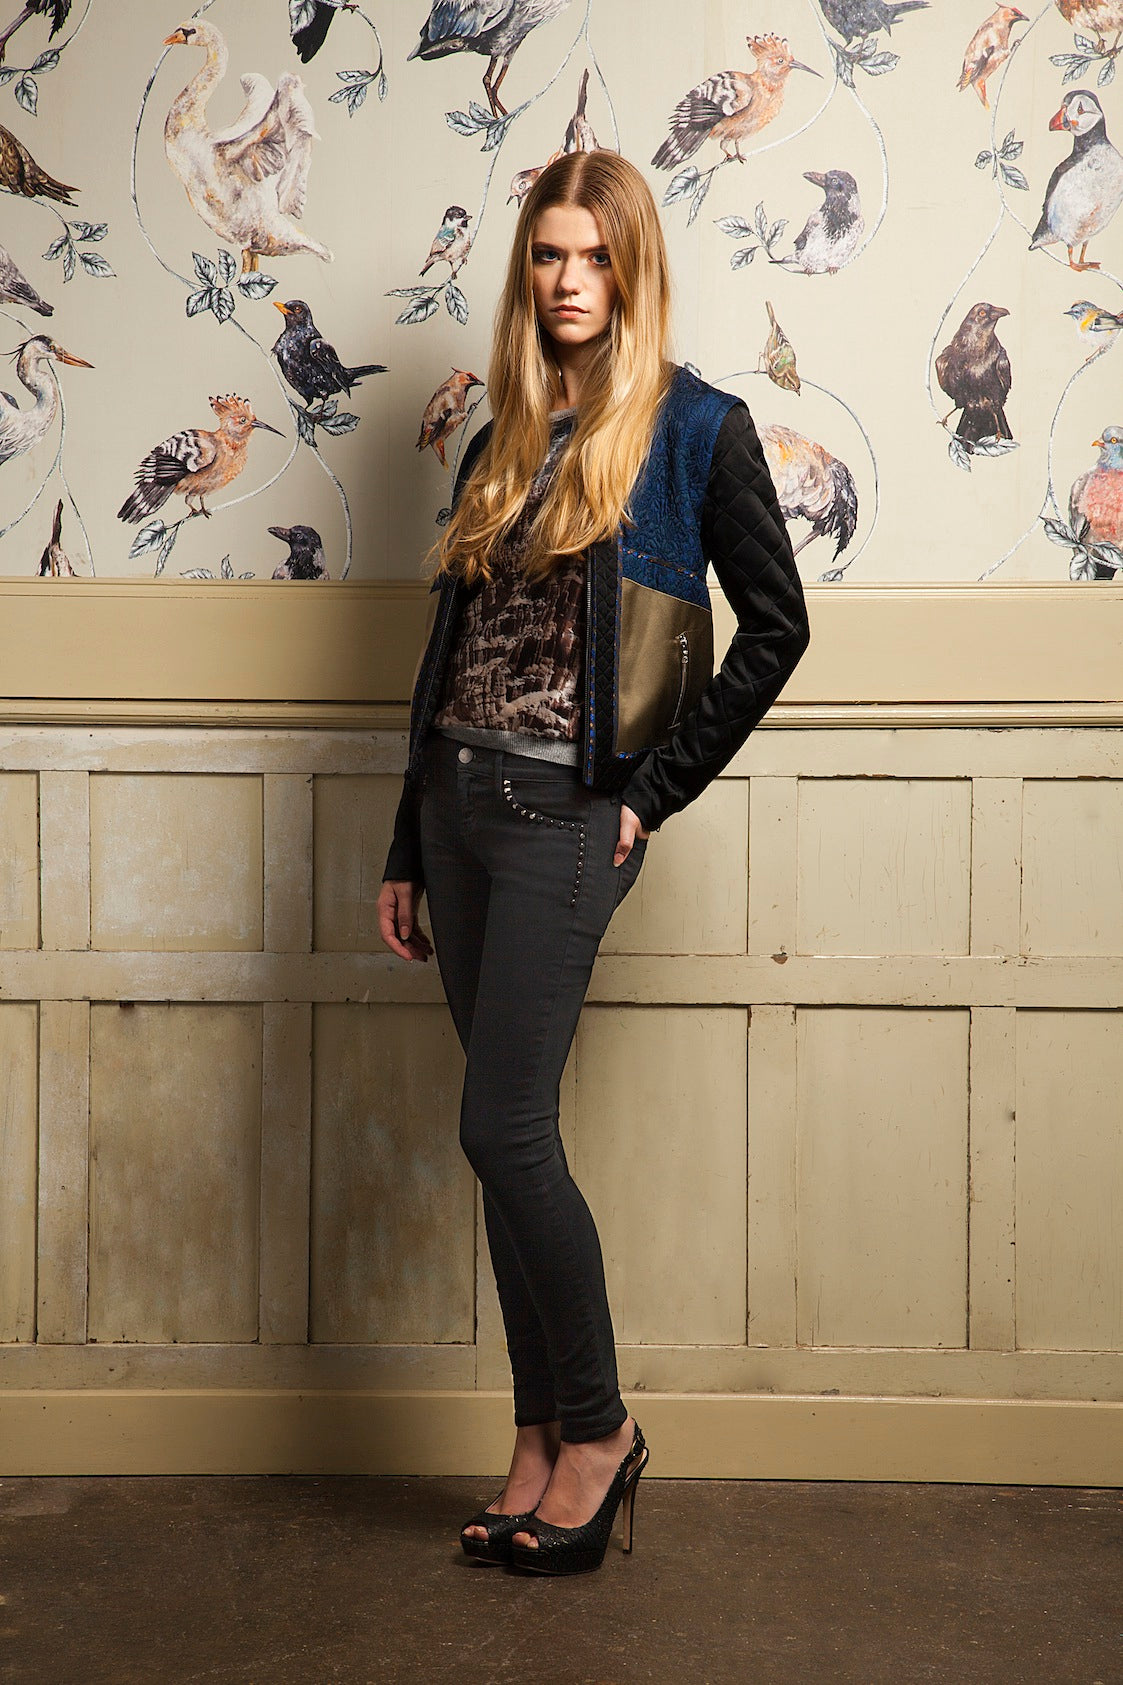 Donna ida, london fashion, london style, embelishments, jacket, top, skinny jeans, black jeans,